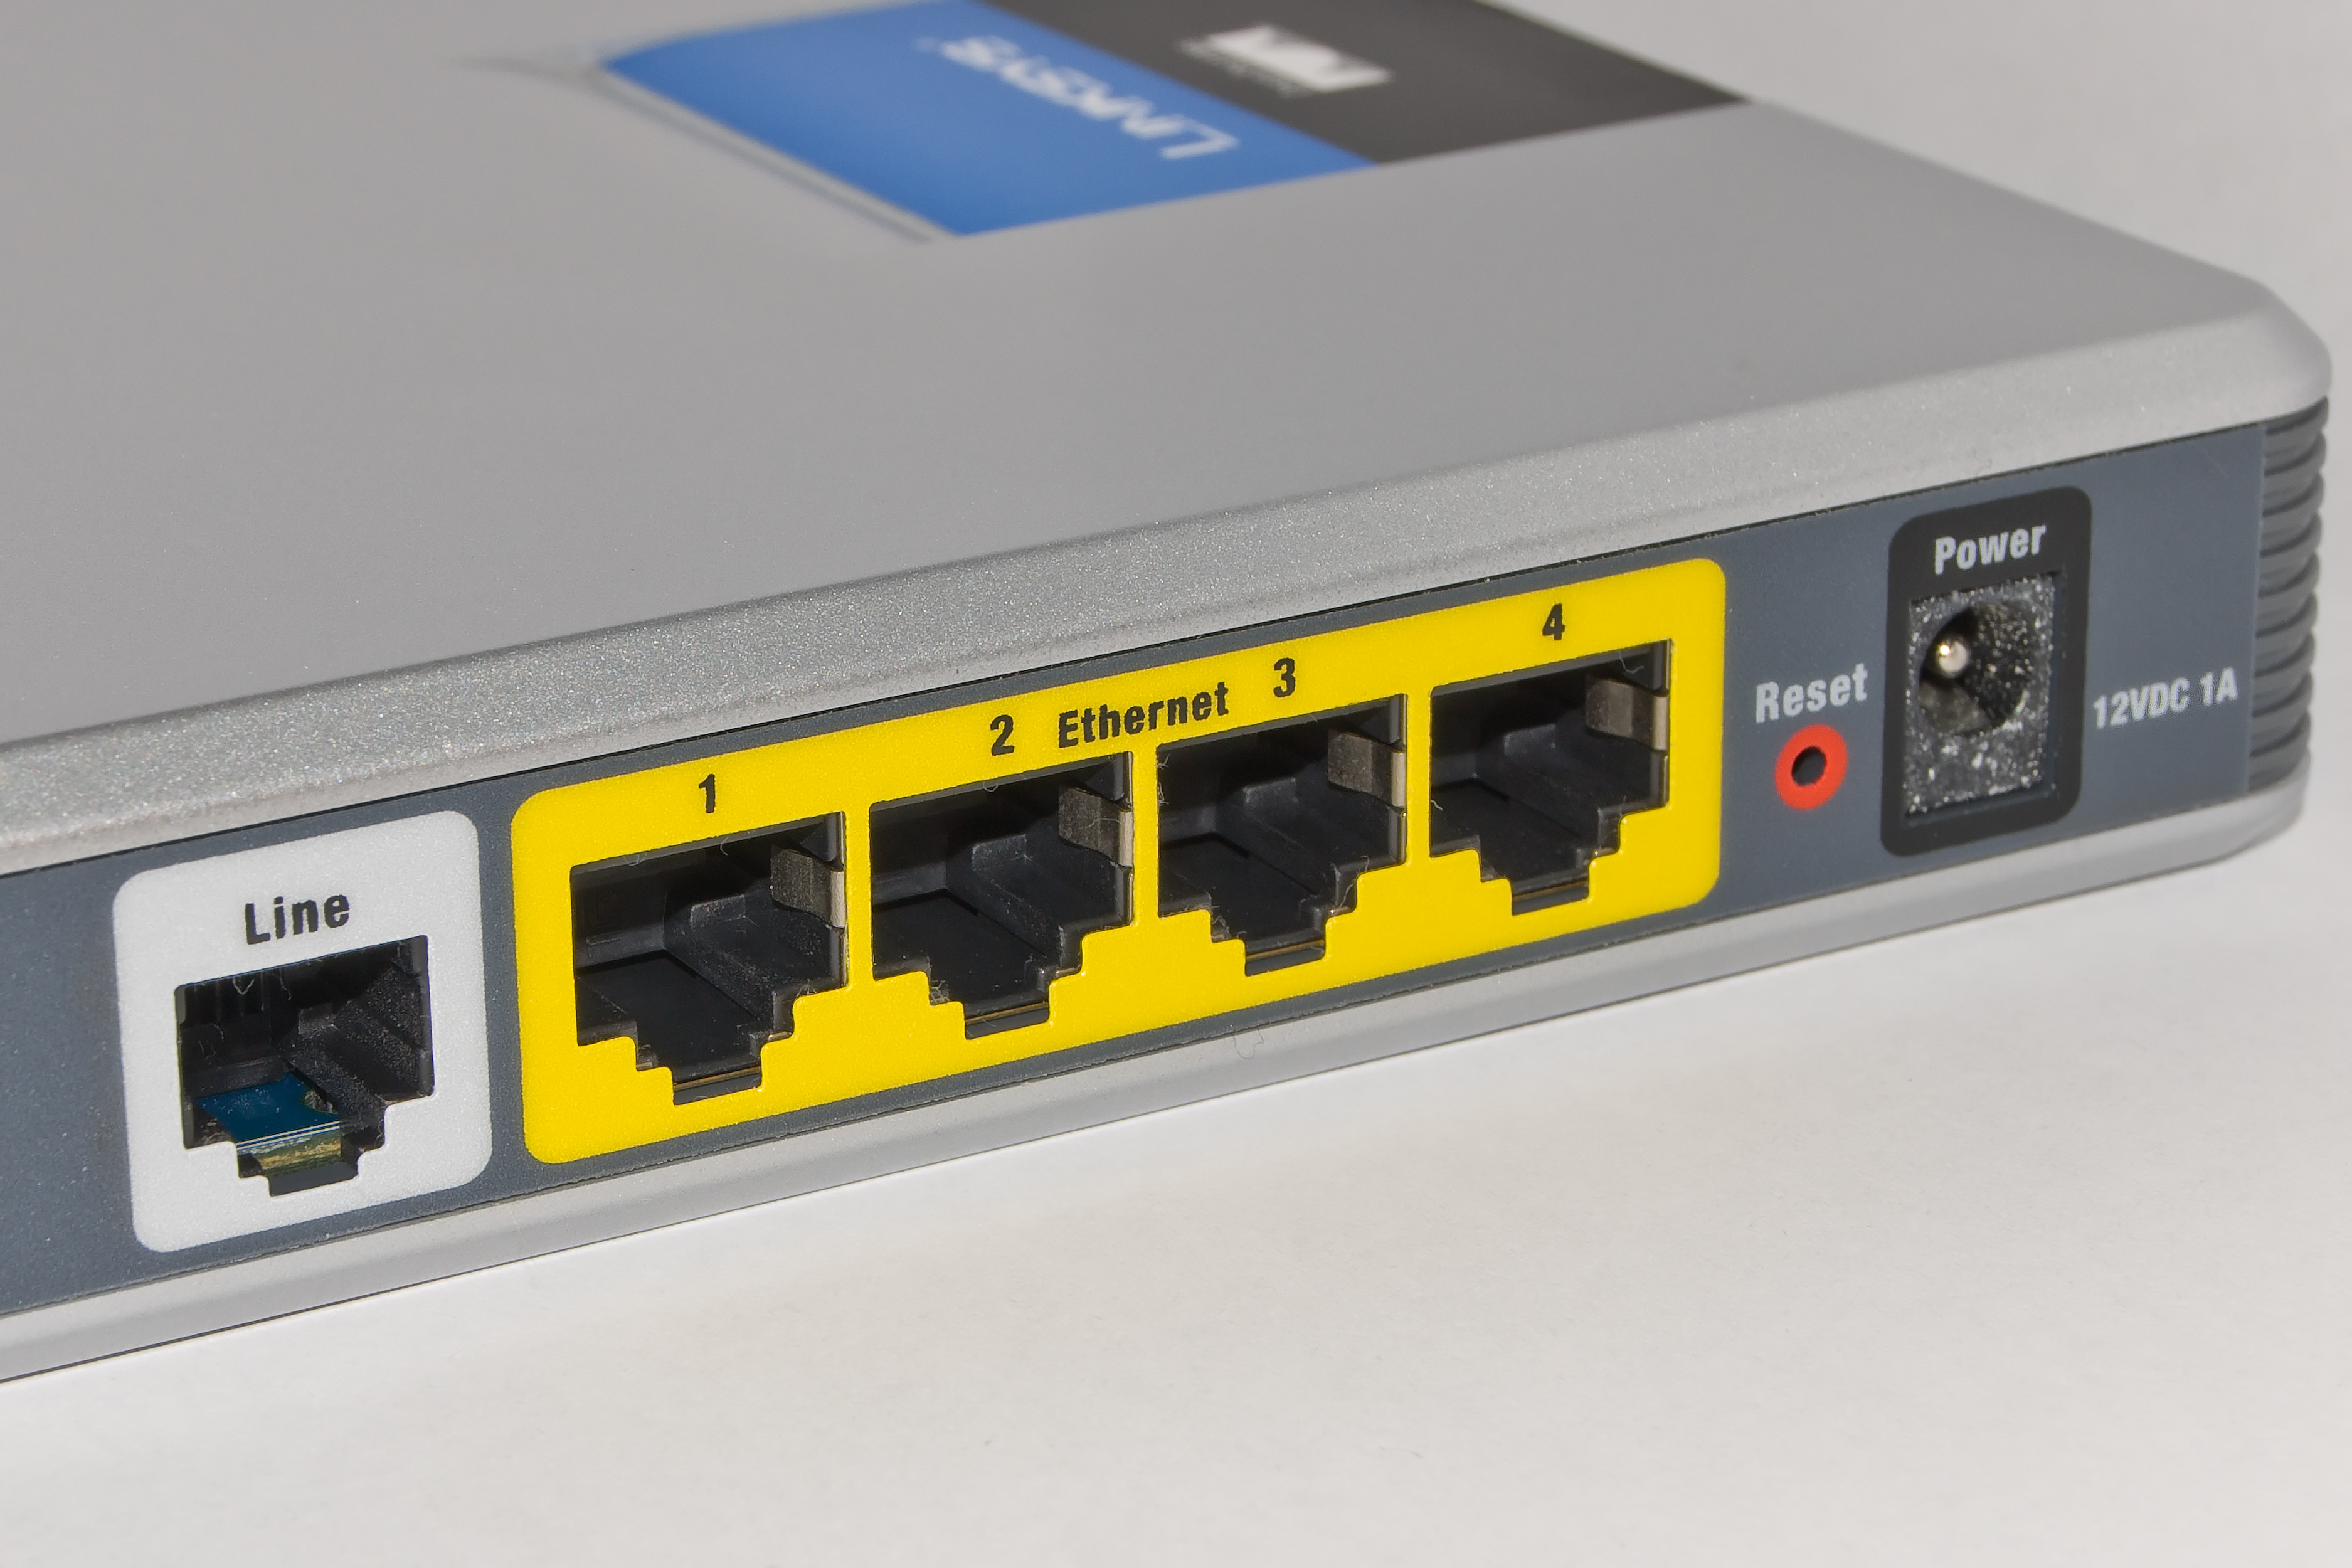 A photograph of a home router